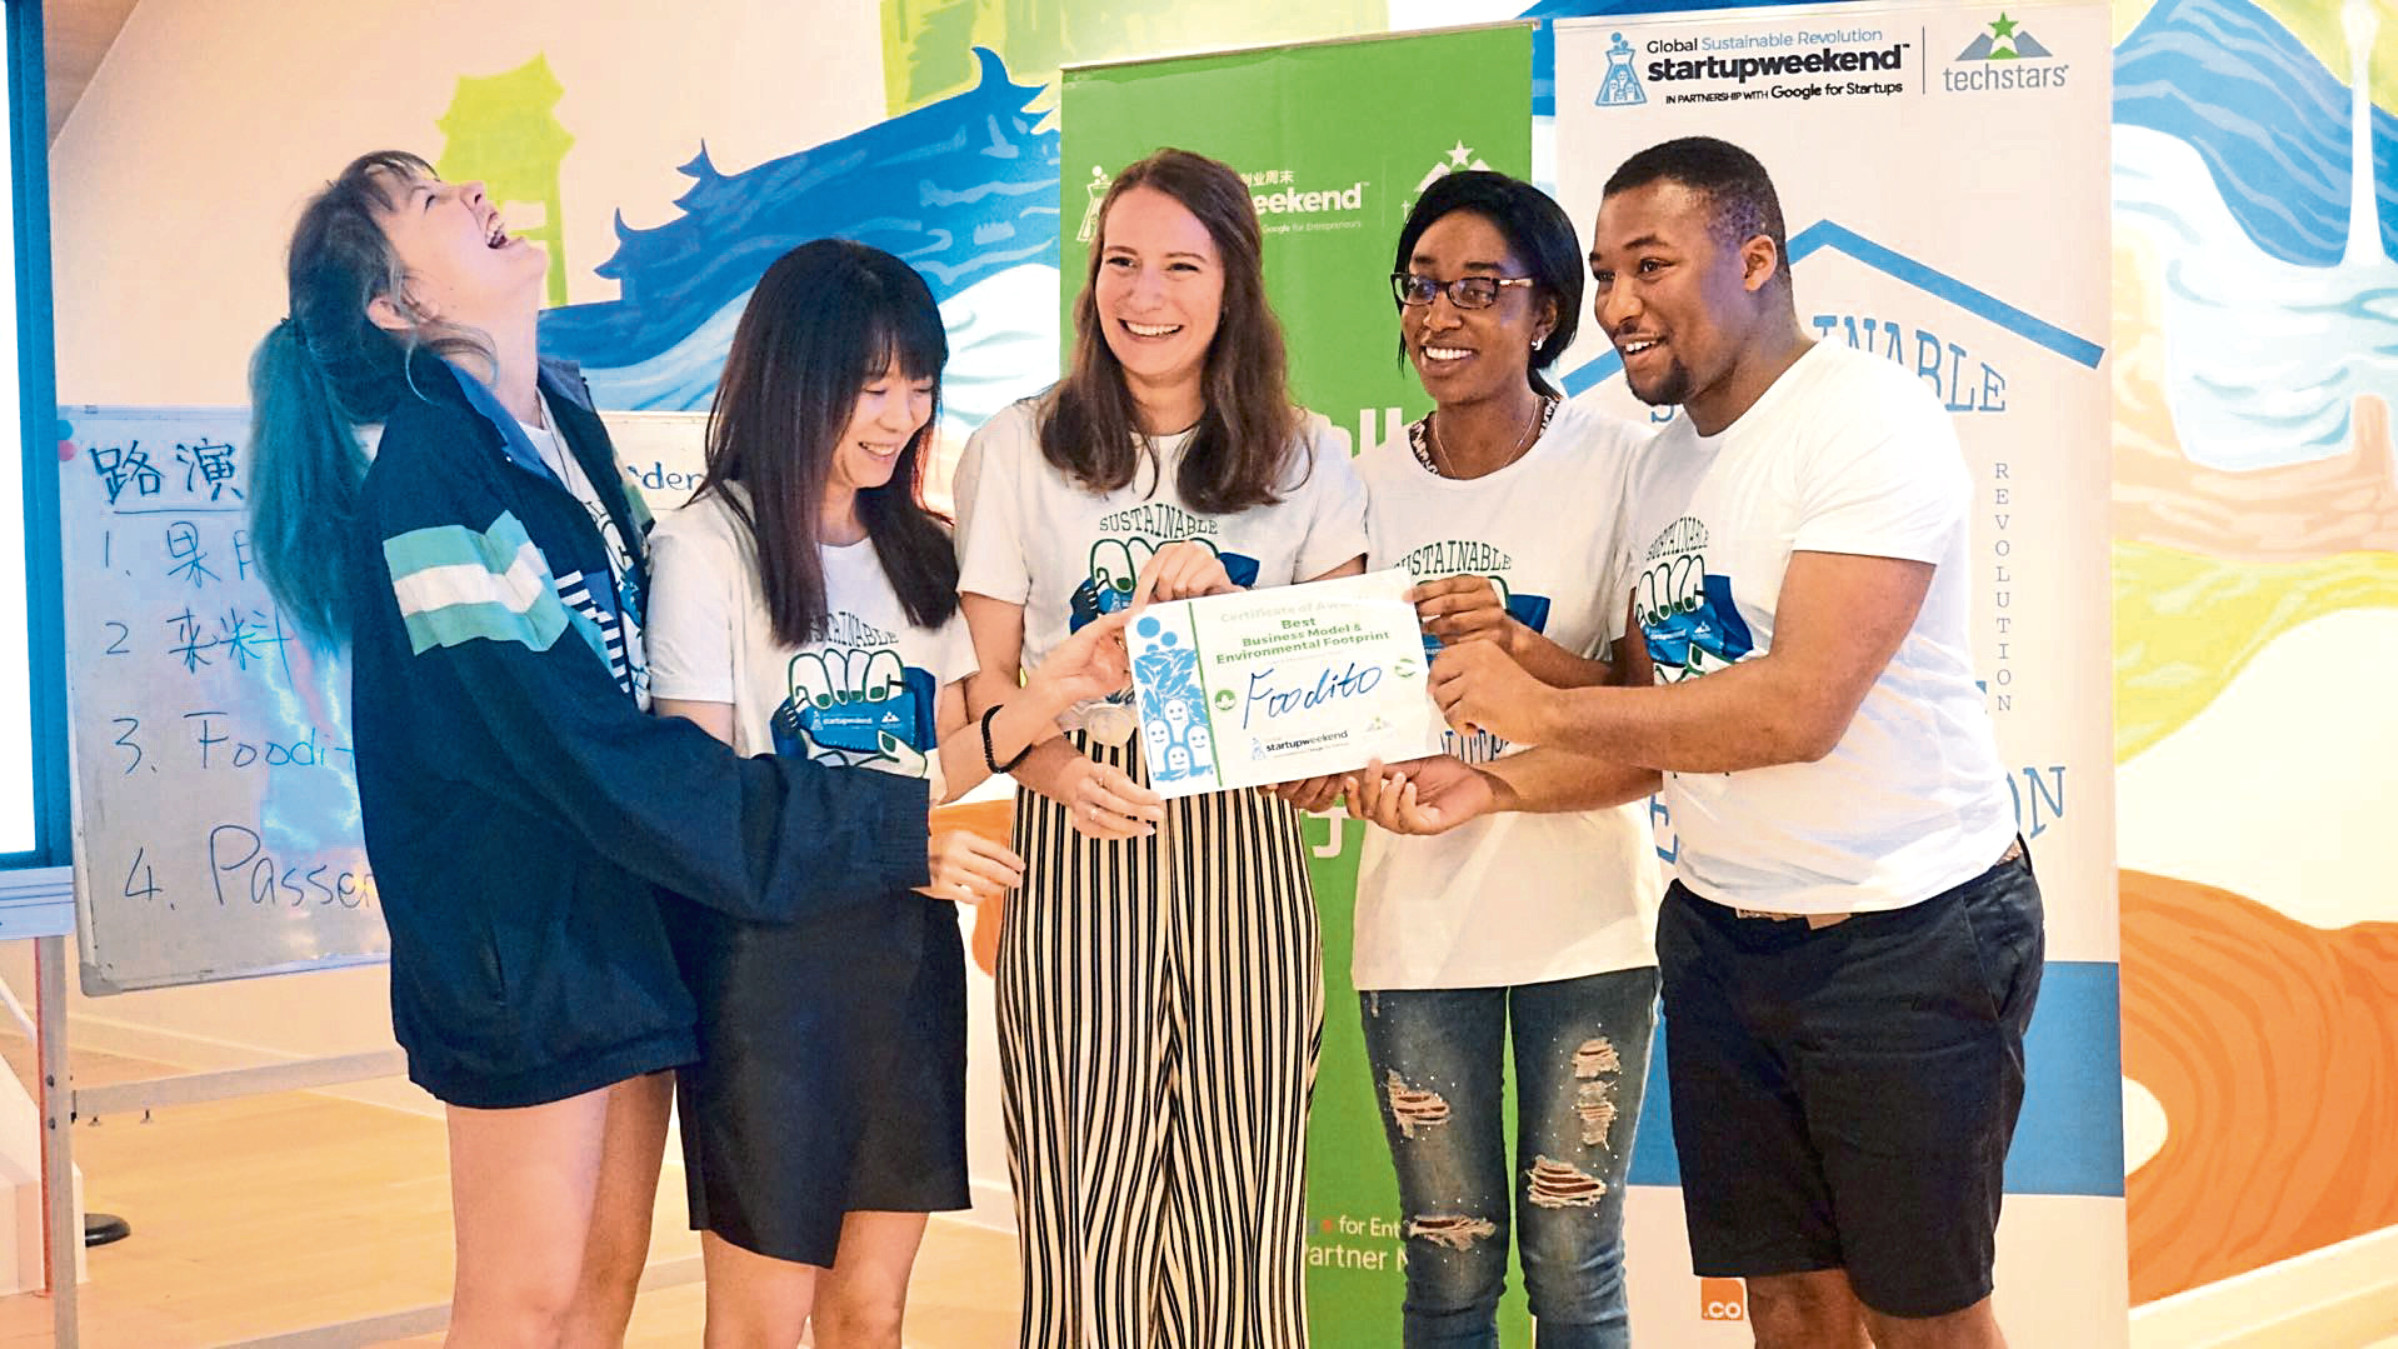 Foodito has been developed by second-year student Donavere Benjamin-Mohan (right) and a team of fellow students from across the UK.